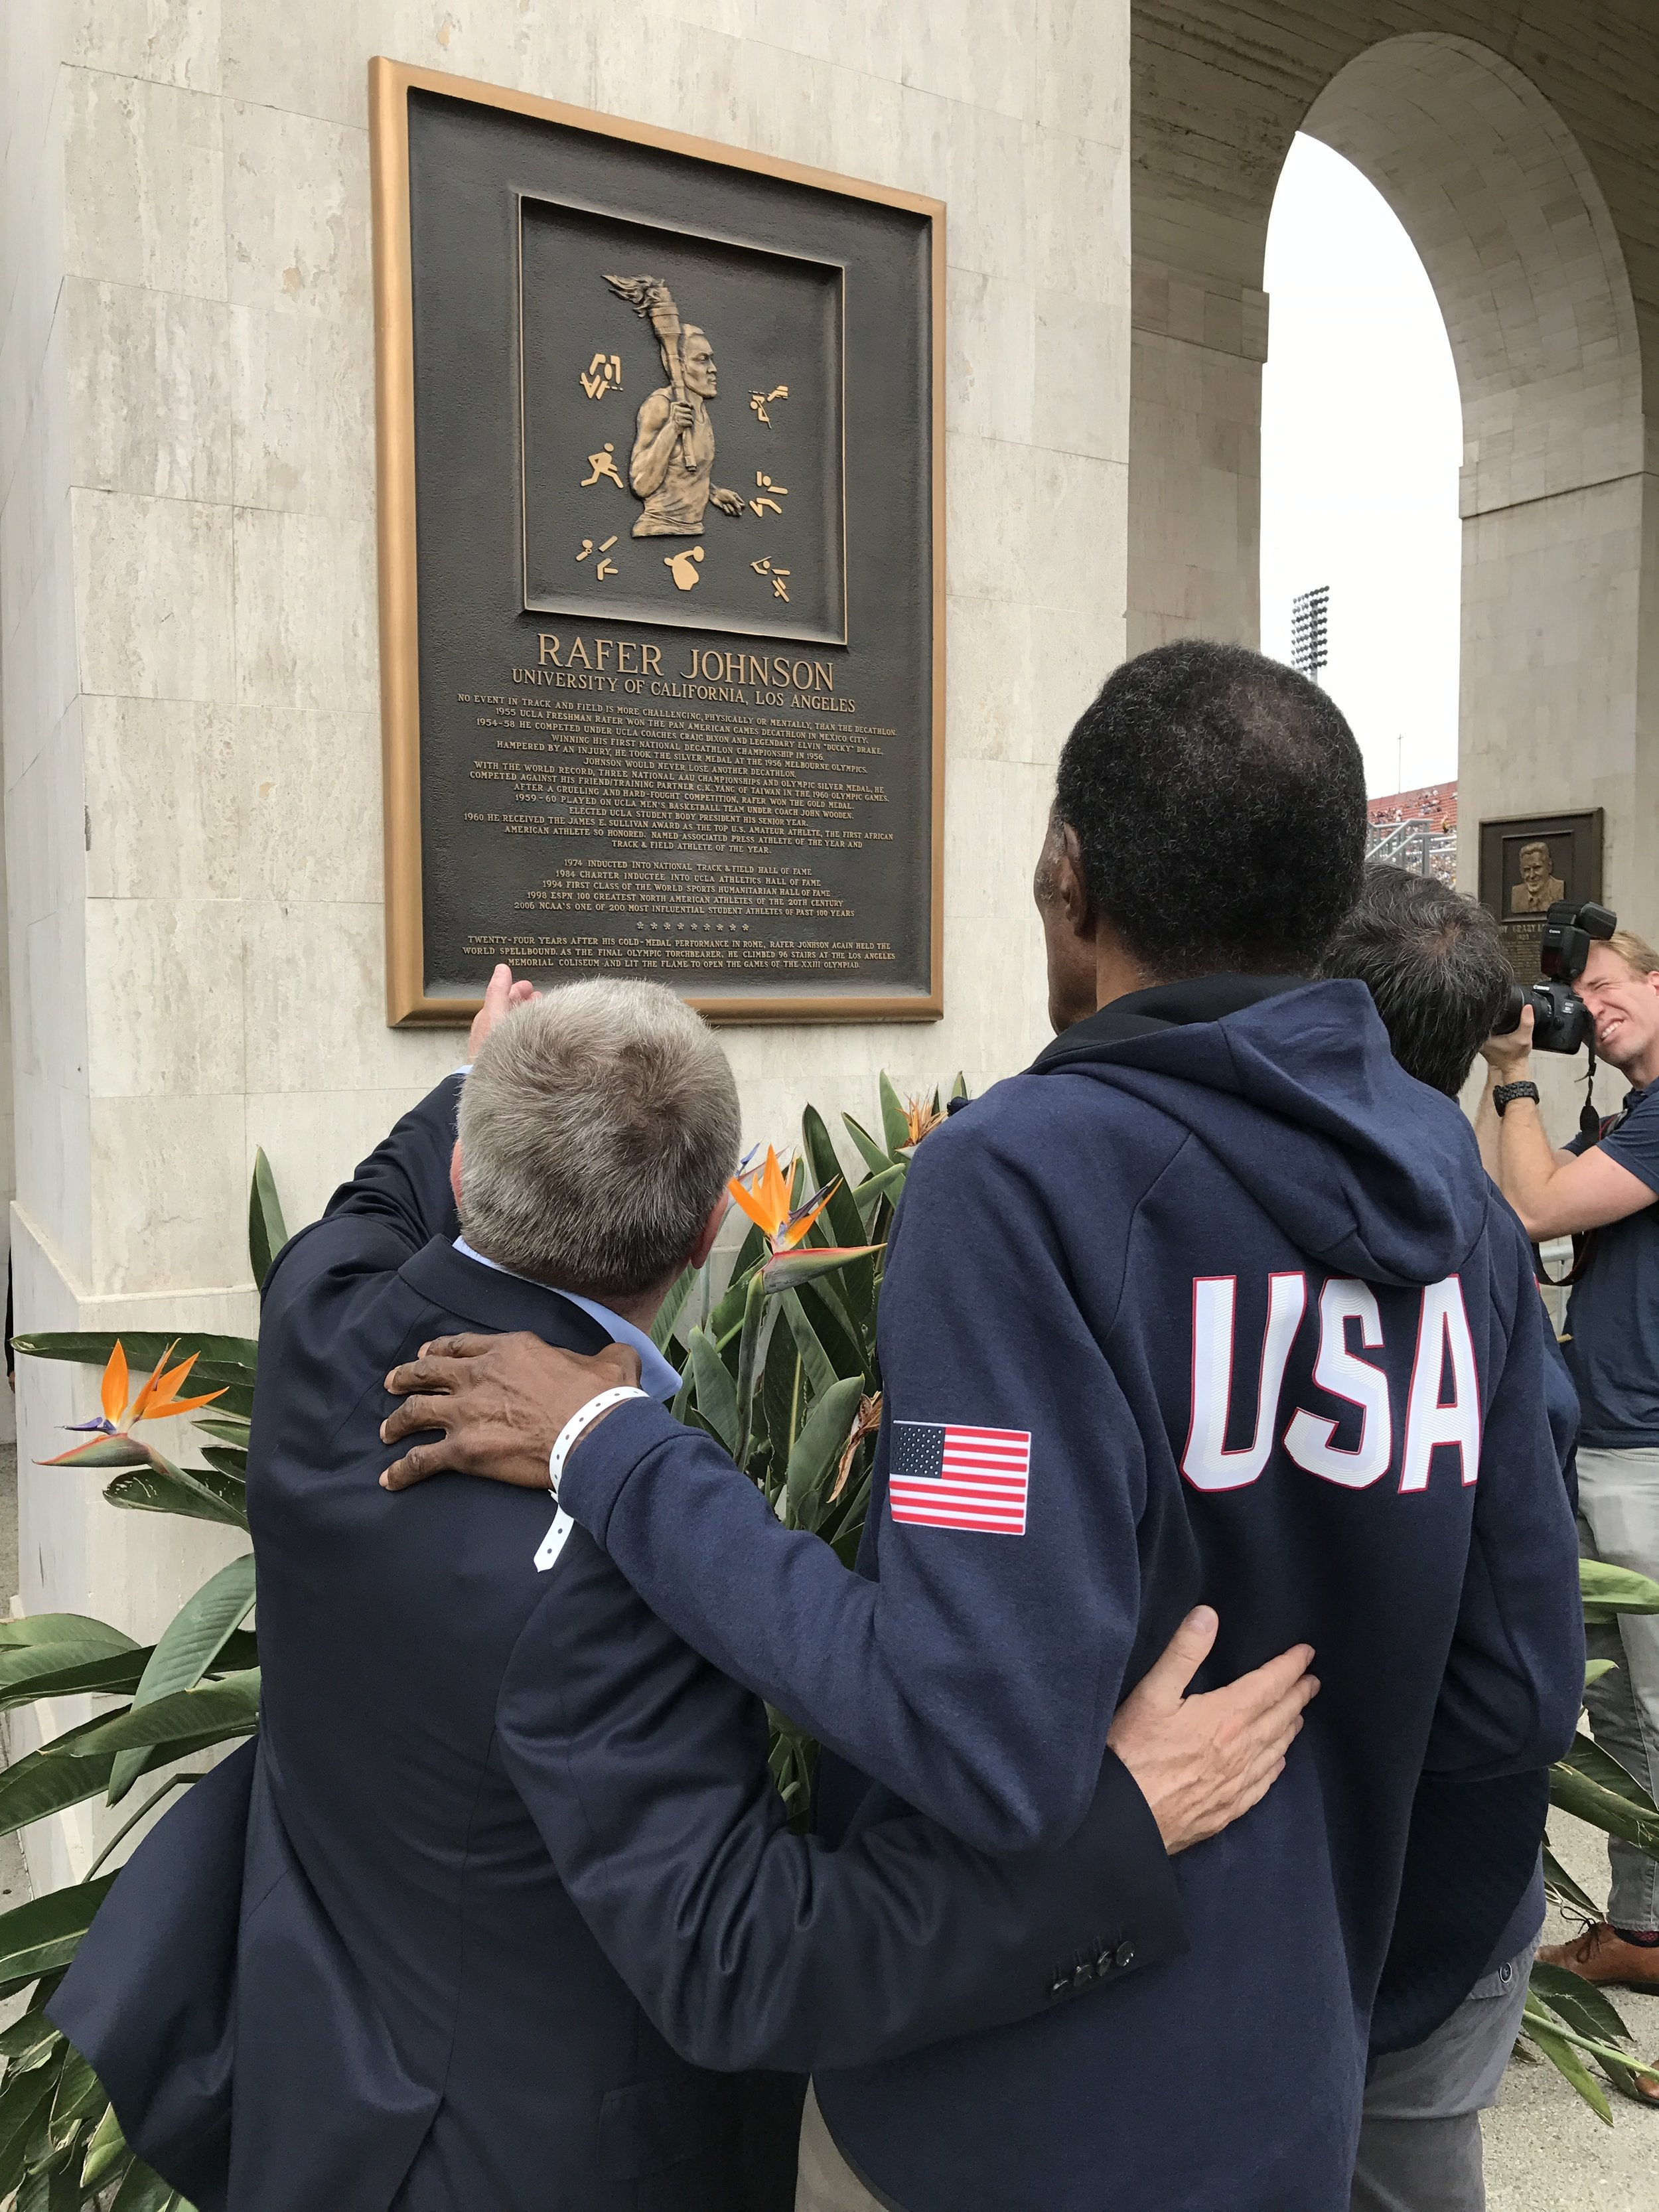 For all its flaws, all its controversies, the Olympic movement still delivers moments ... like this